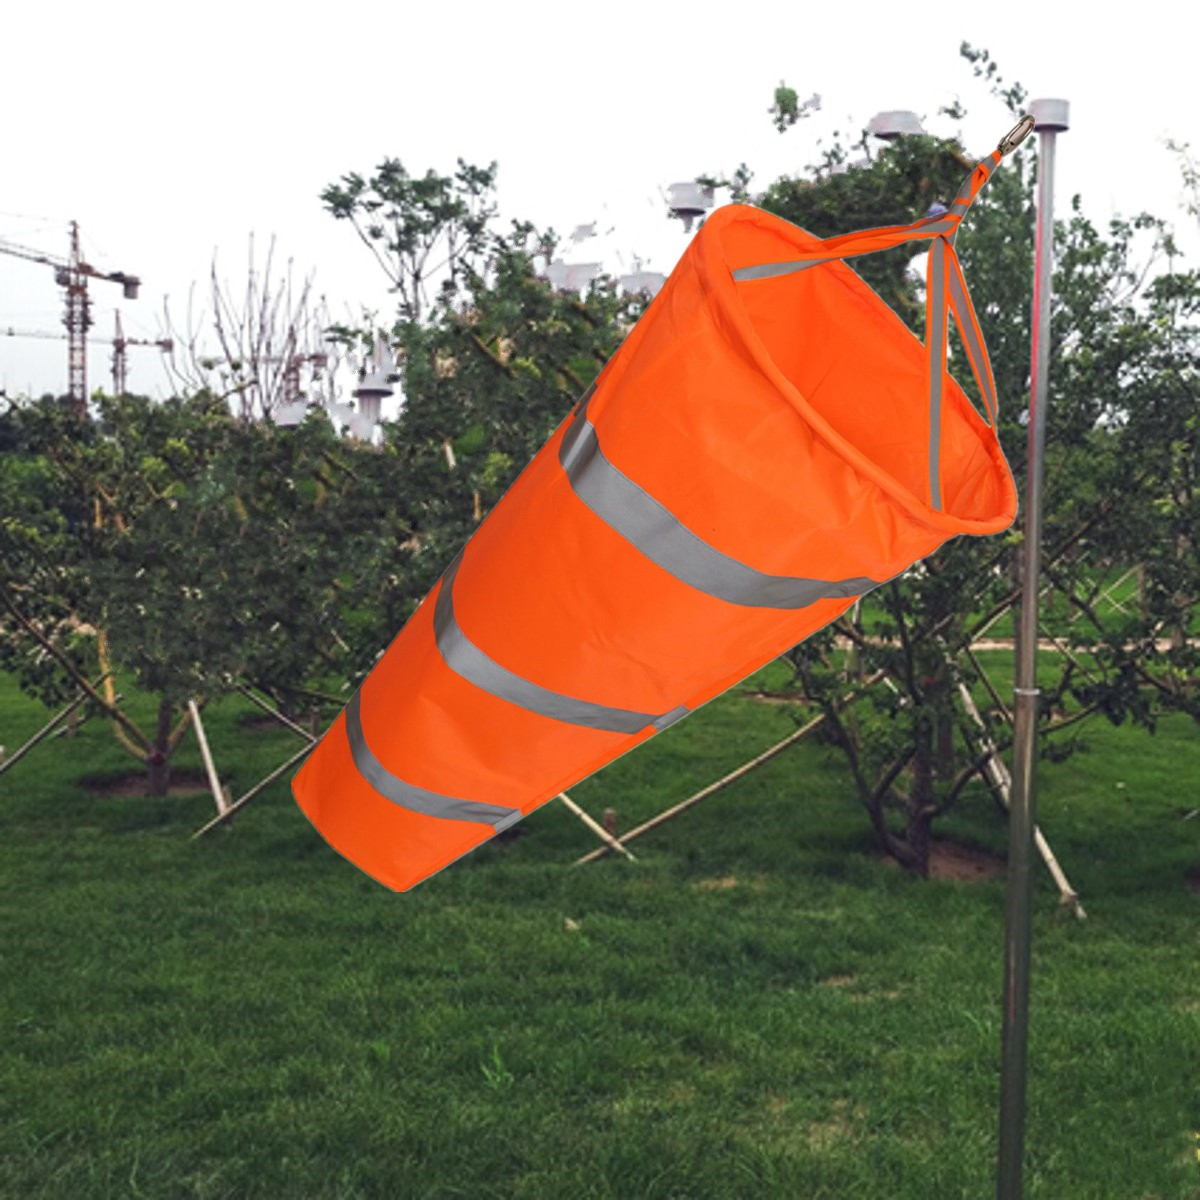 Outdoor Fun & Sports The Cheapest Price All Weather Nylon Wind Sock Weather Vane Windsock Outdoor Toy Kite,wind Monitoring Needs Wind Indicator Many Size For Choice